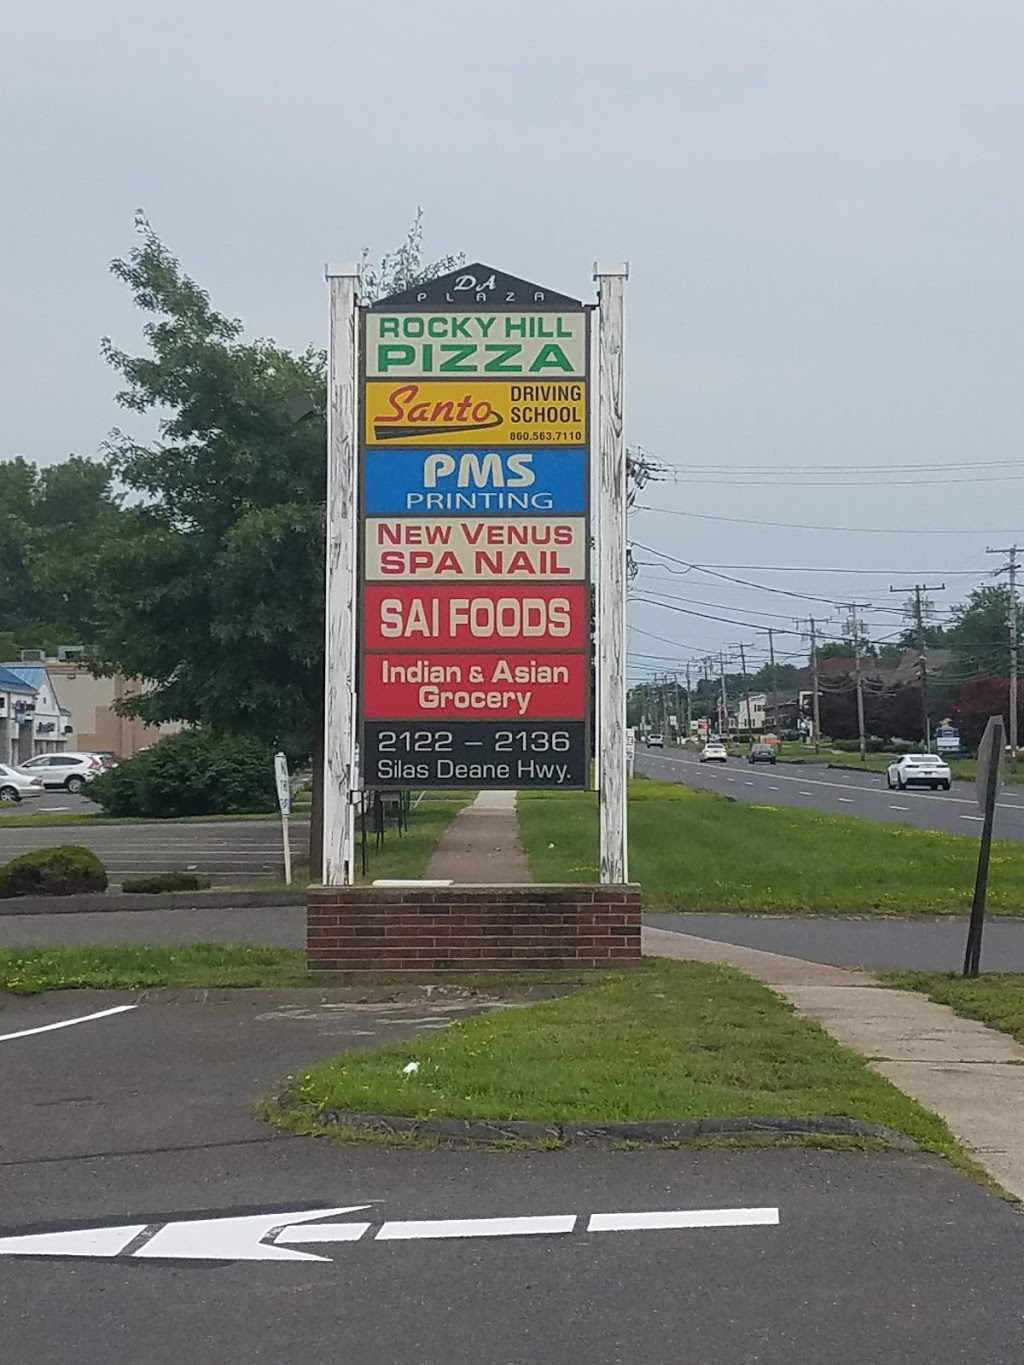 Rocky Hill Pizza | restaurant | 2132 Silas Deane Hwy, Rocky Hill, CT 06067, USA | 8605635111 OR +1 860-563-5111